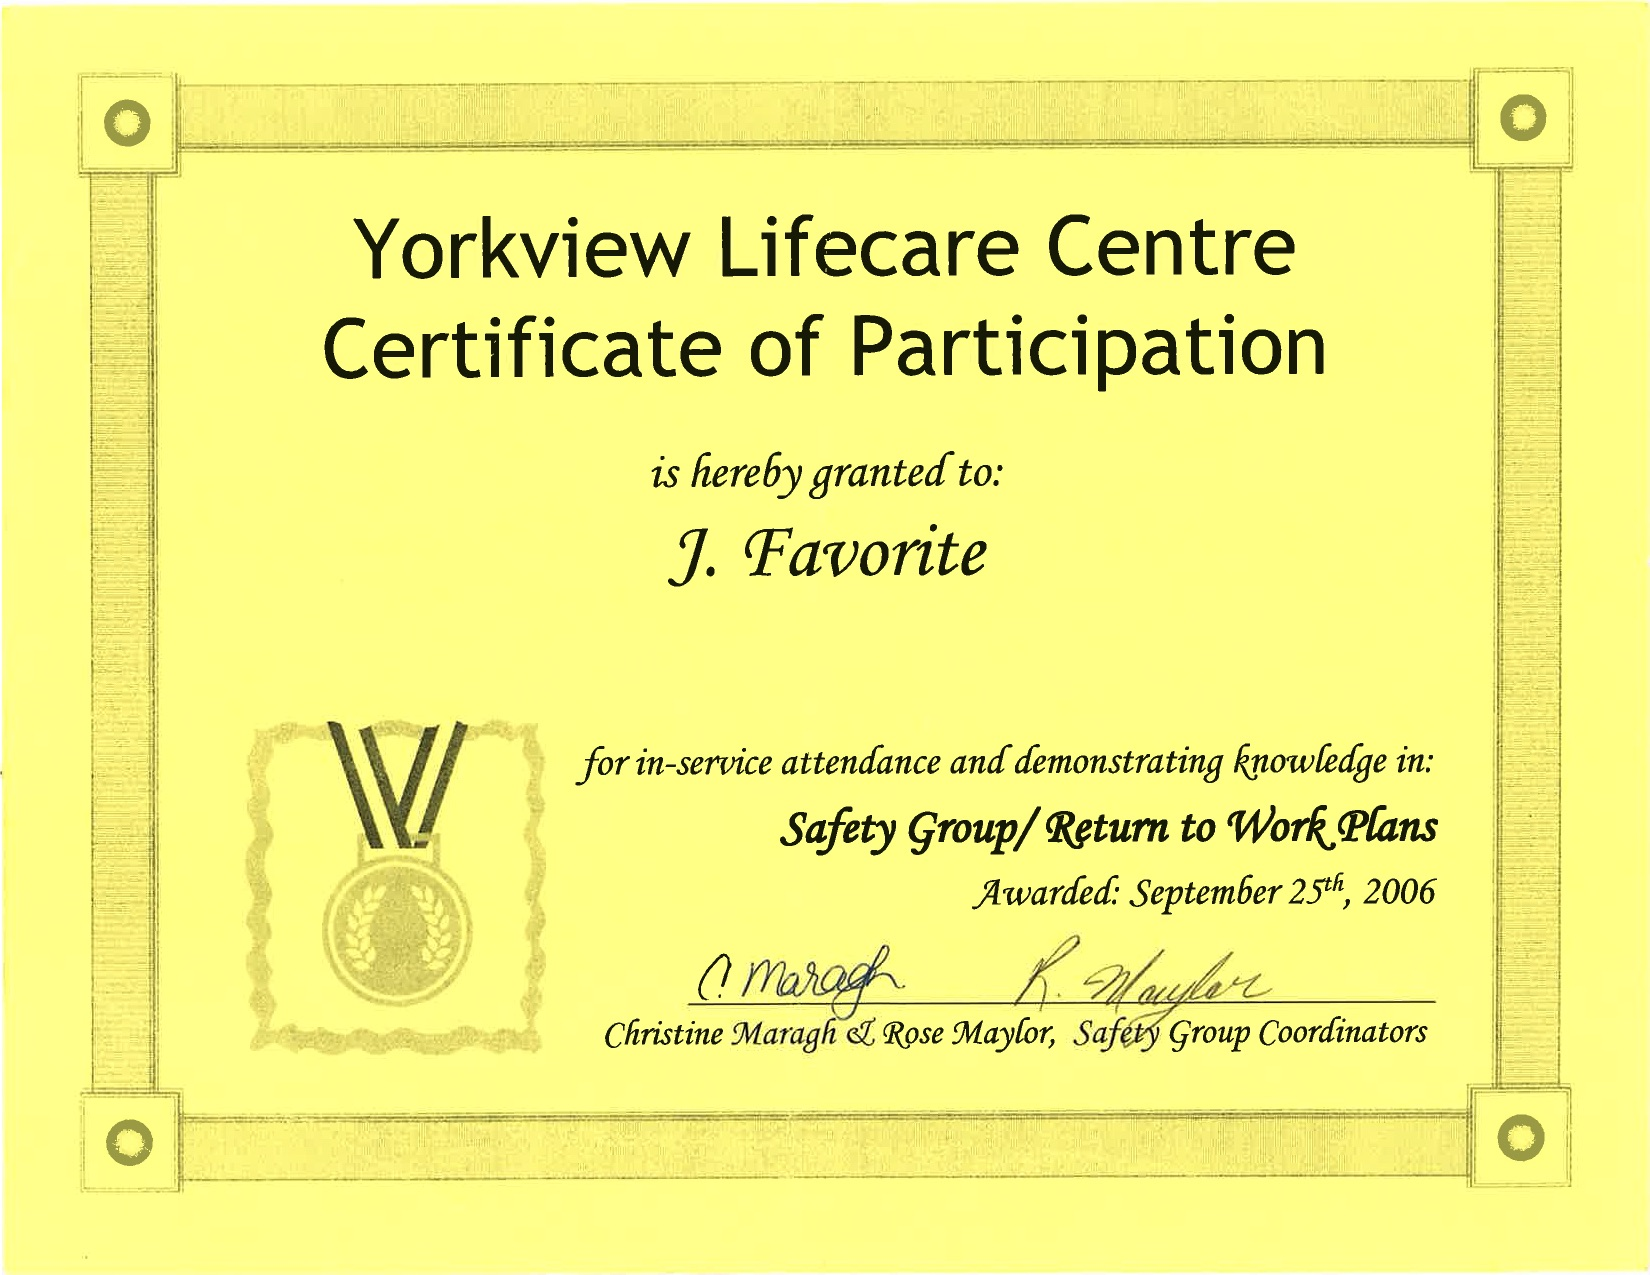 Certificate of recognition government of ontario black history certificate of participation yorkview lifecare centre 1betcityfo Images